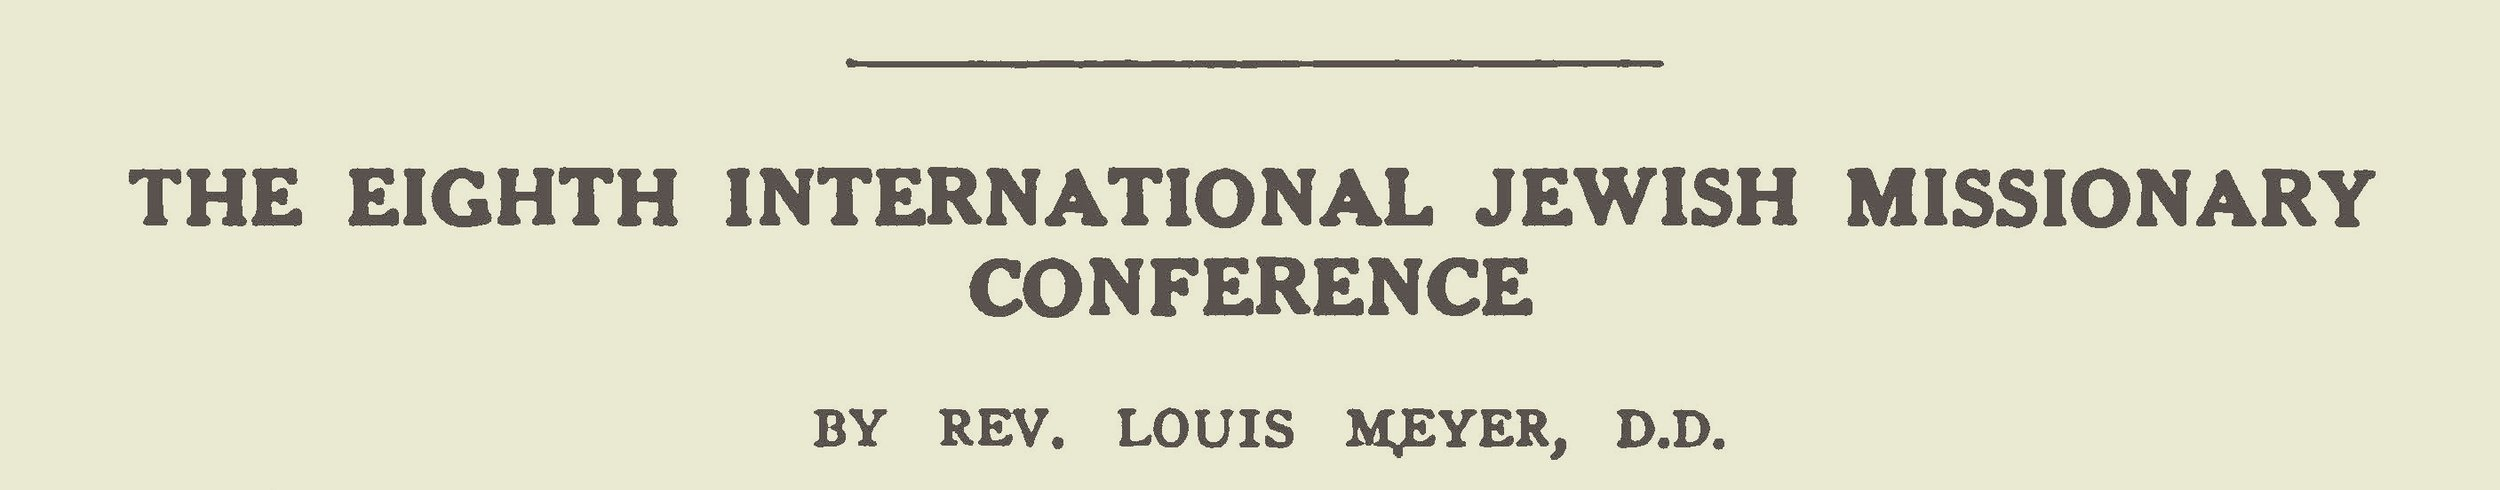 Meyer, Louis, The Eighth International Jewish Missionary Conference Title Page.jpg